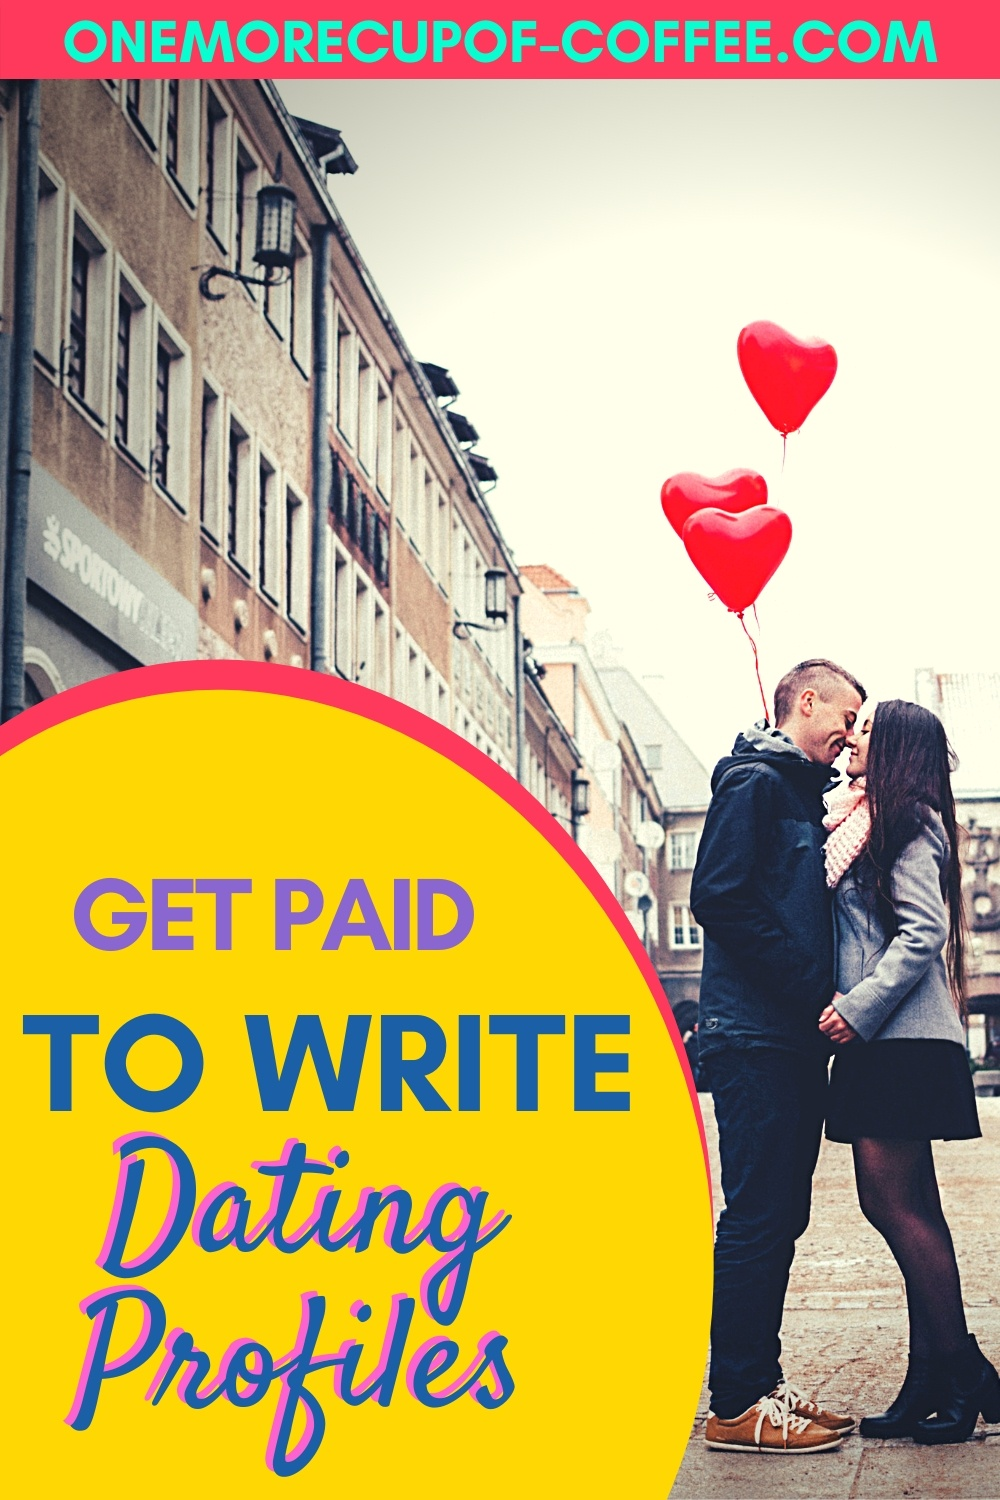 Man and woman kissing in the street to represent getting paid to write dating profiles.